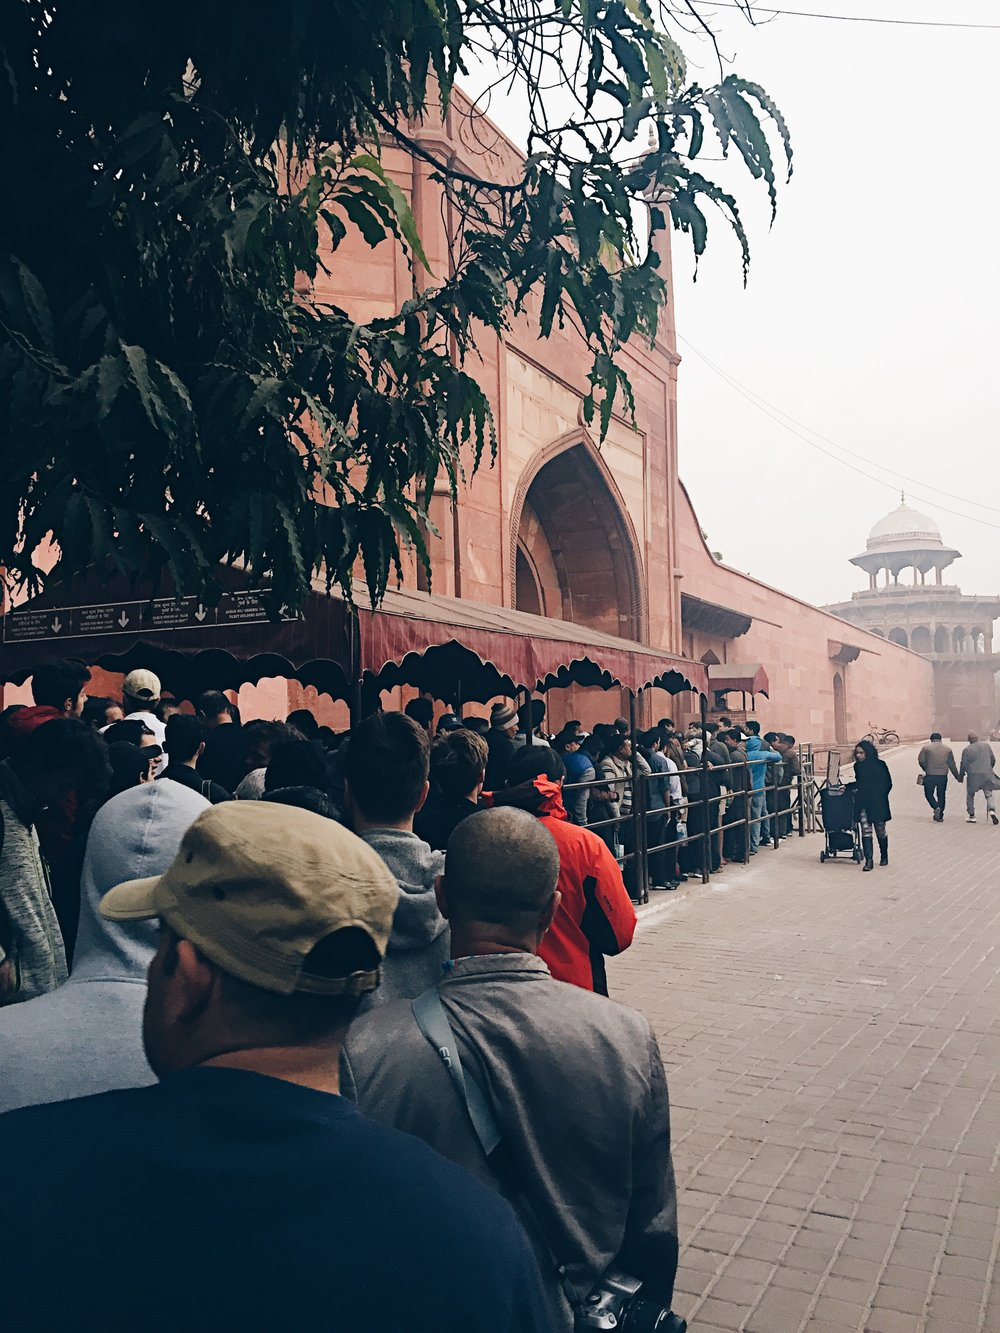 This is what some ATM lines looked like.. but haha this is the line for the Taj Mahal